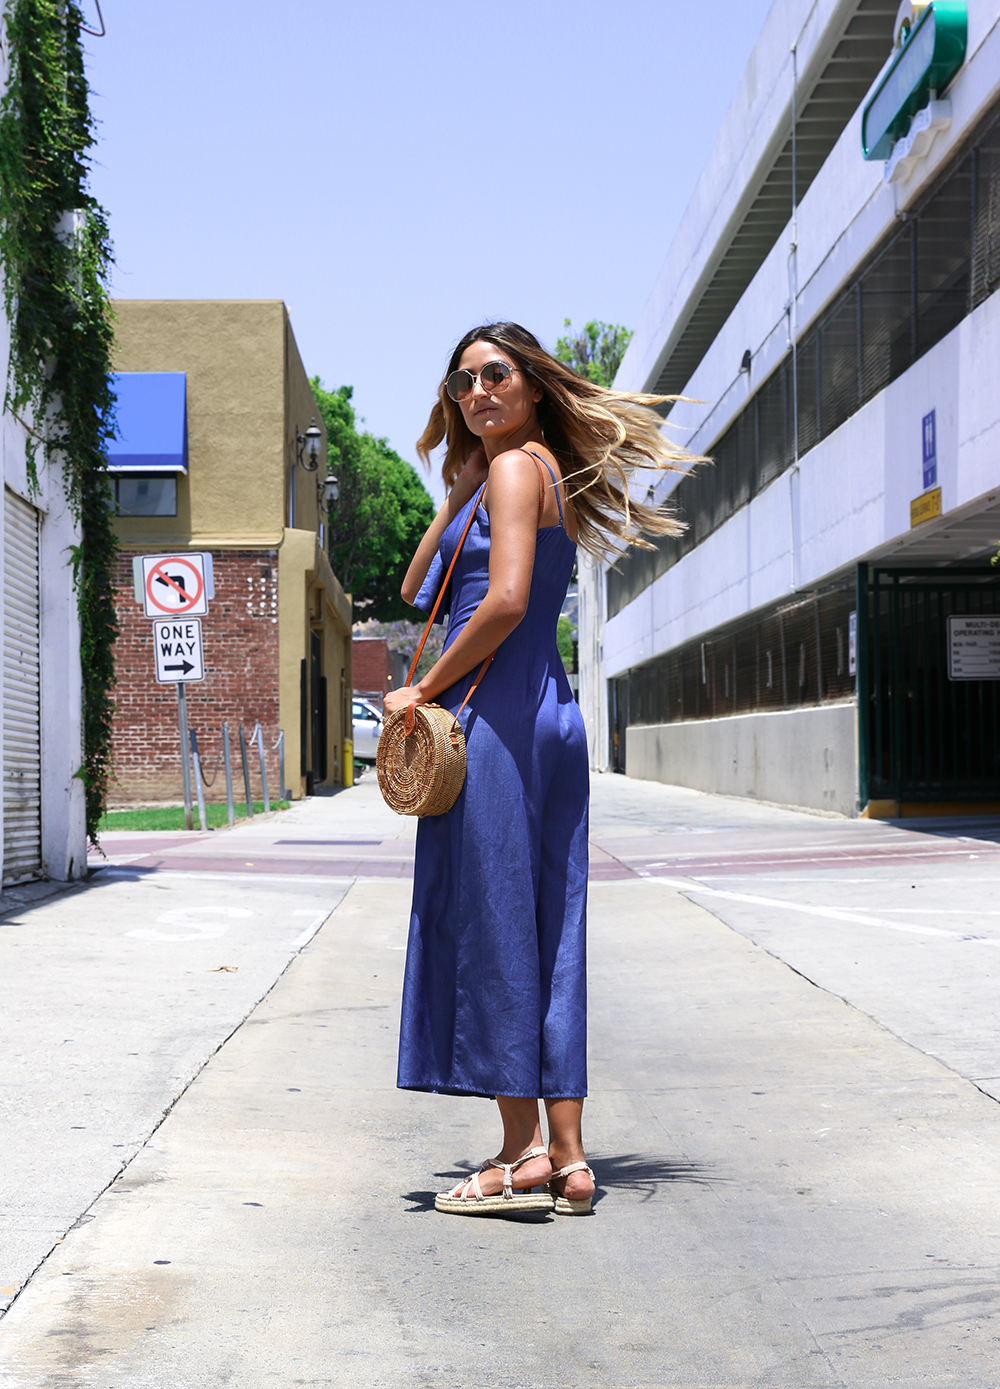 My Thoughts on Loop Giveaways, Loop Giveaways, Blogger giveaways, free, giveaways, bloggers, ootd, melrodstyle, chambray jumpsuit, posh square, whittier, la blogger, street style, instagram, social media, instagram giveaways, trending